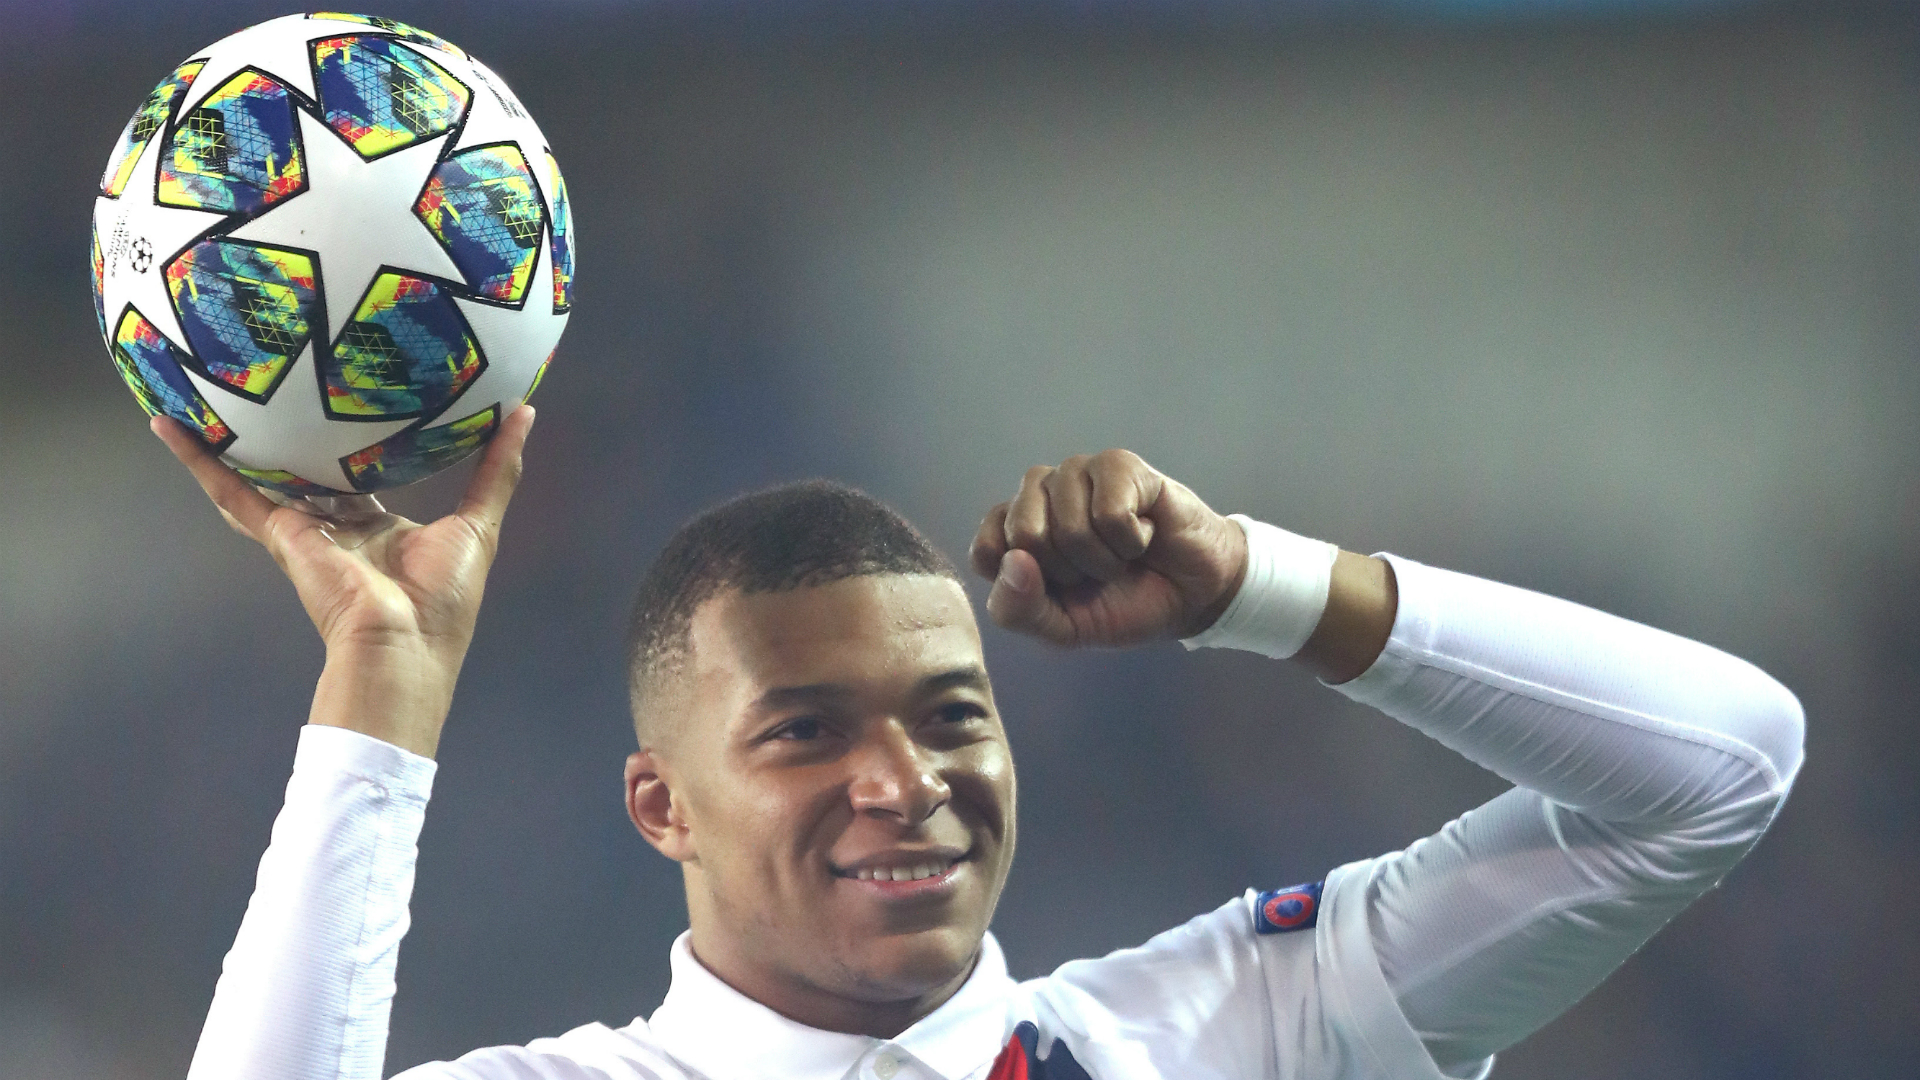 Kylian Mbappe became the youngest player to score 15 Champions League goals, surpassing Lionel Messi.